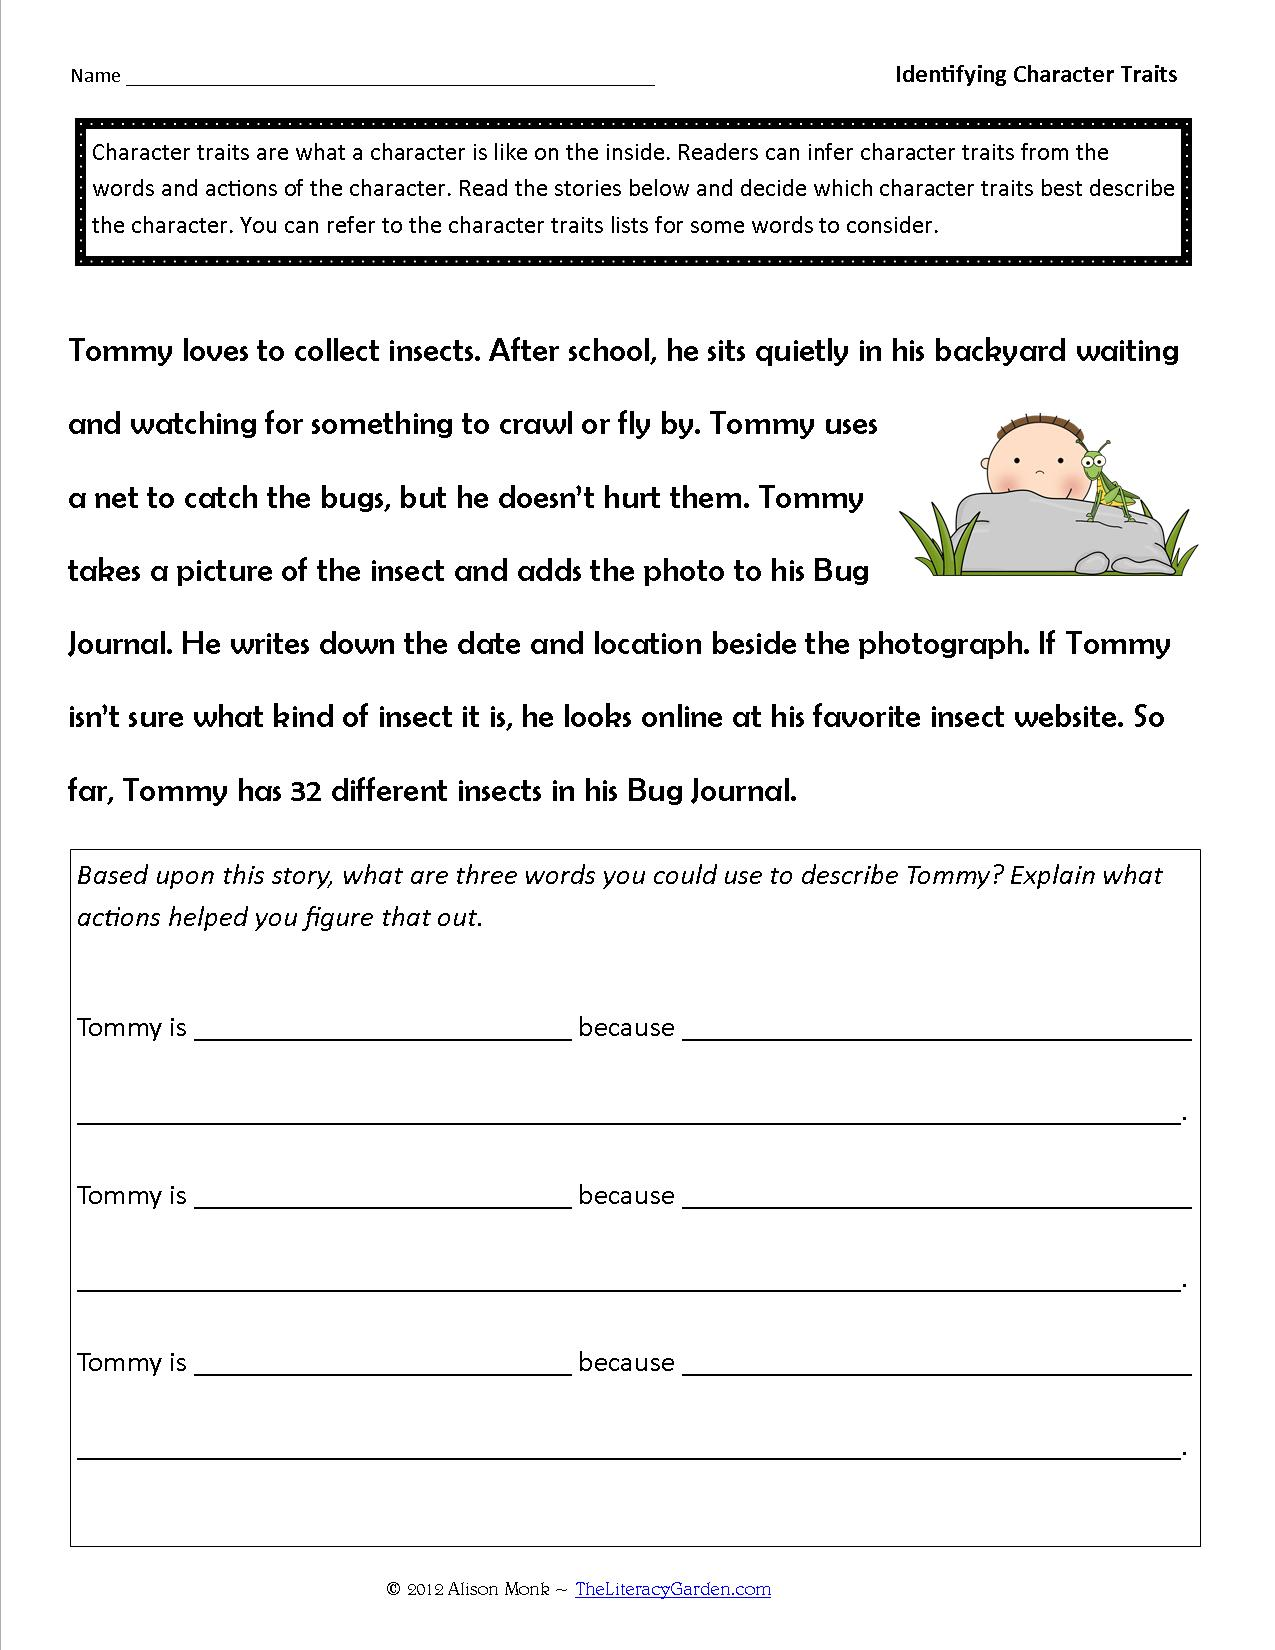 Worksheets Character Traits Worksheets worksheets on character traits 17 best images about pinterest character